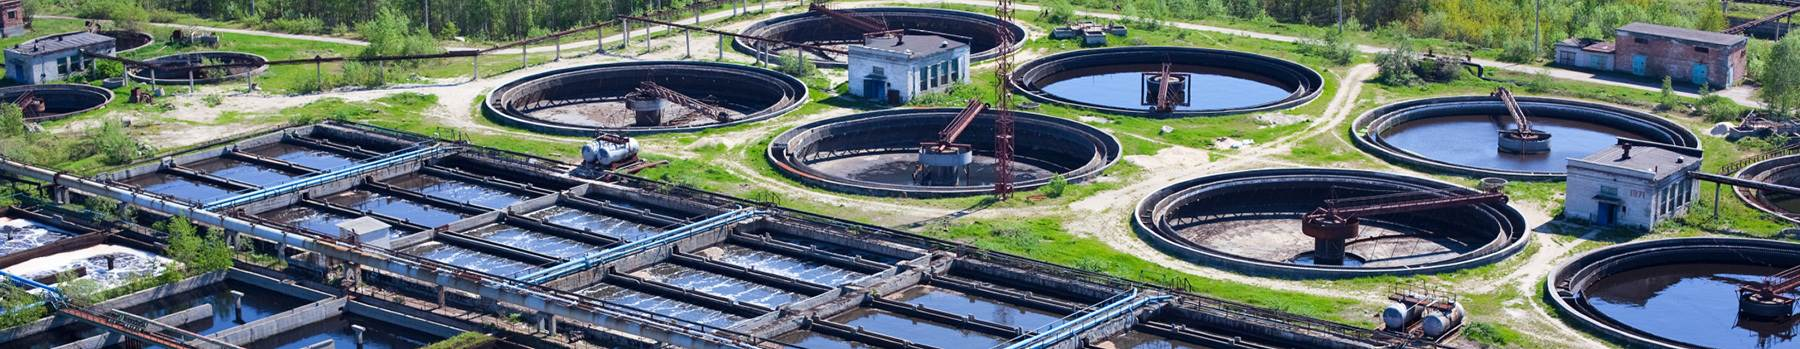 hero-wastewater-treatment-plants_121215826_Water_Treatment_Plant